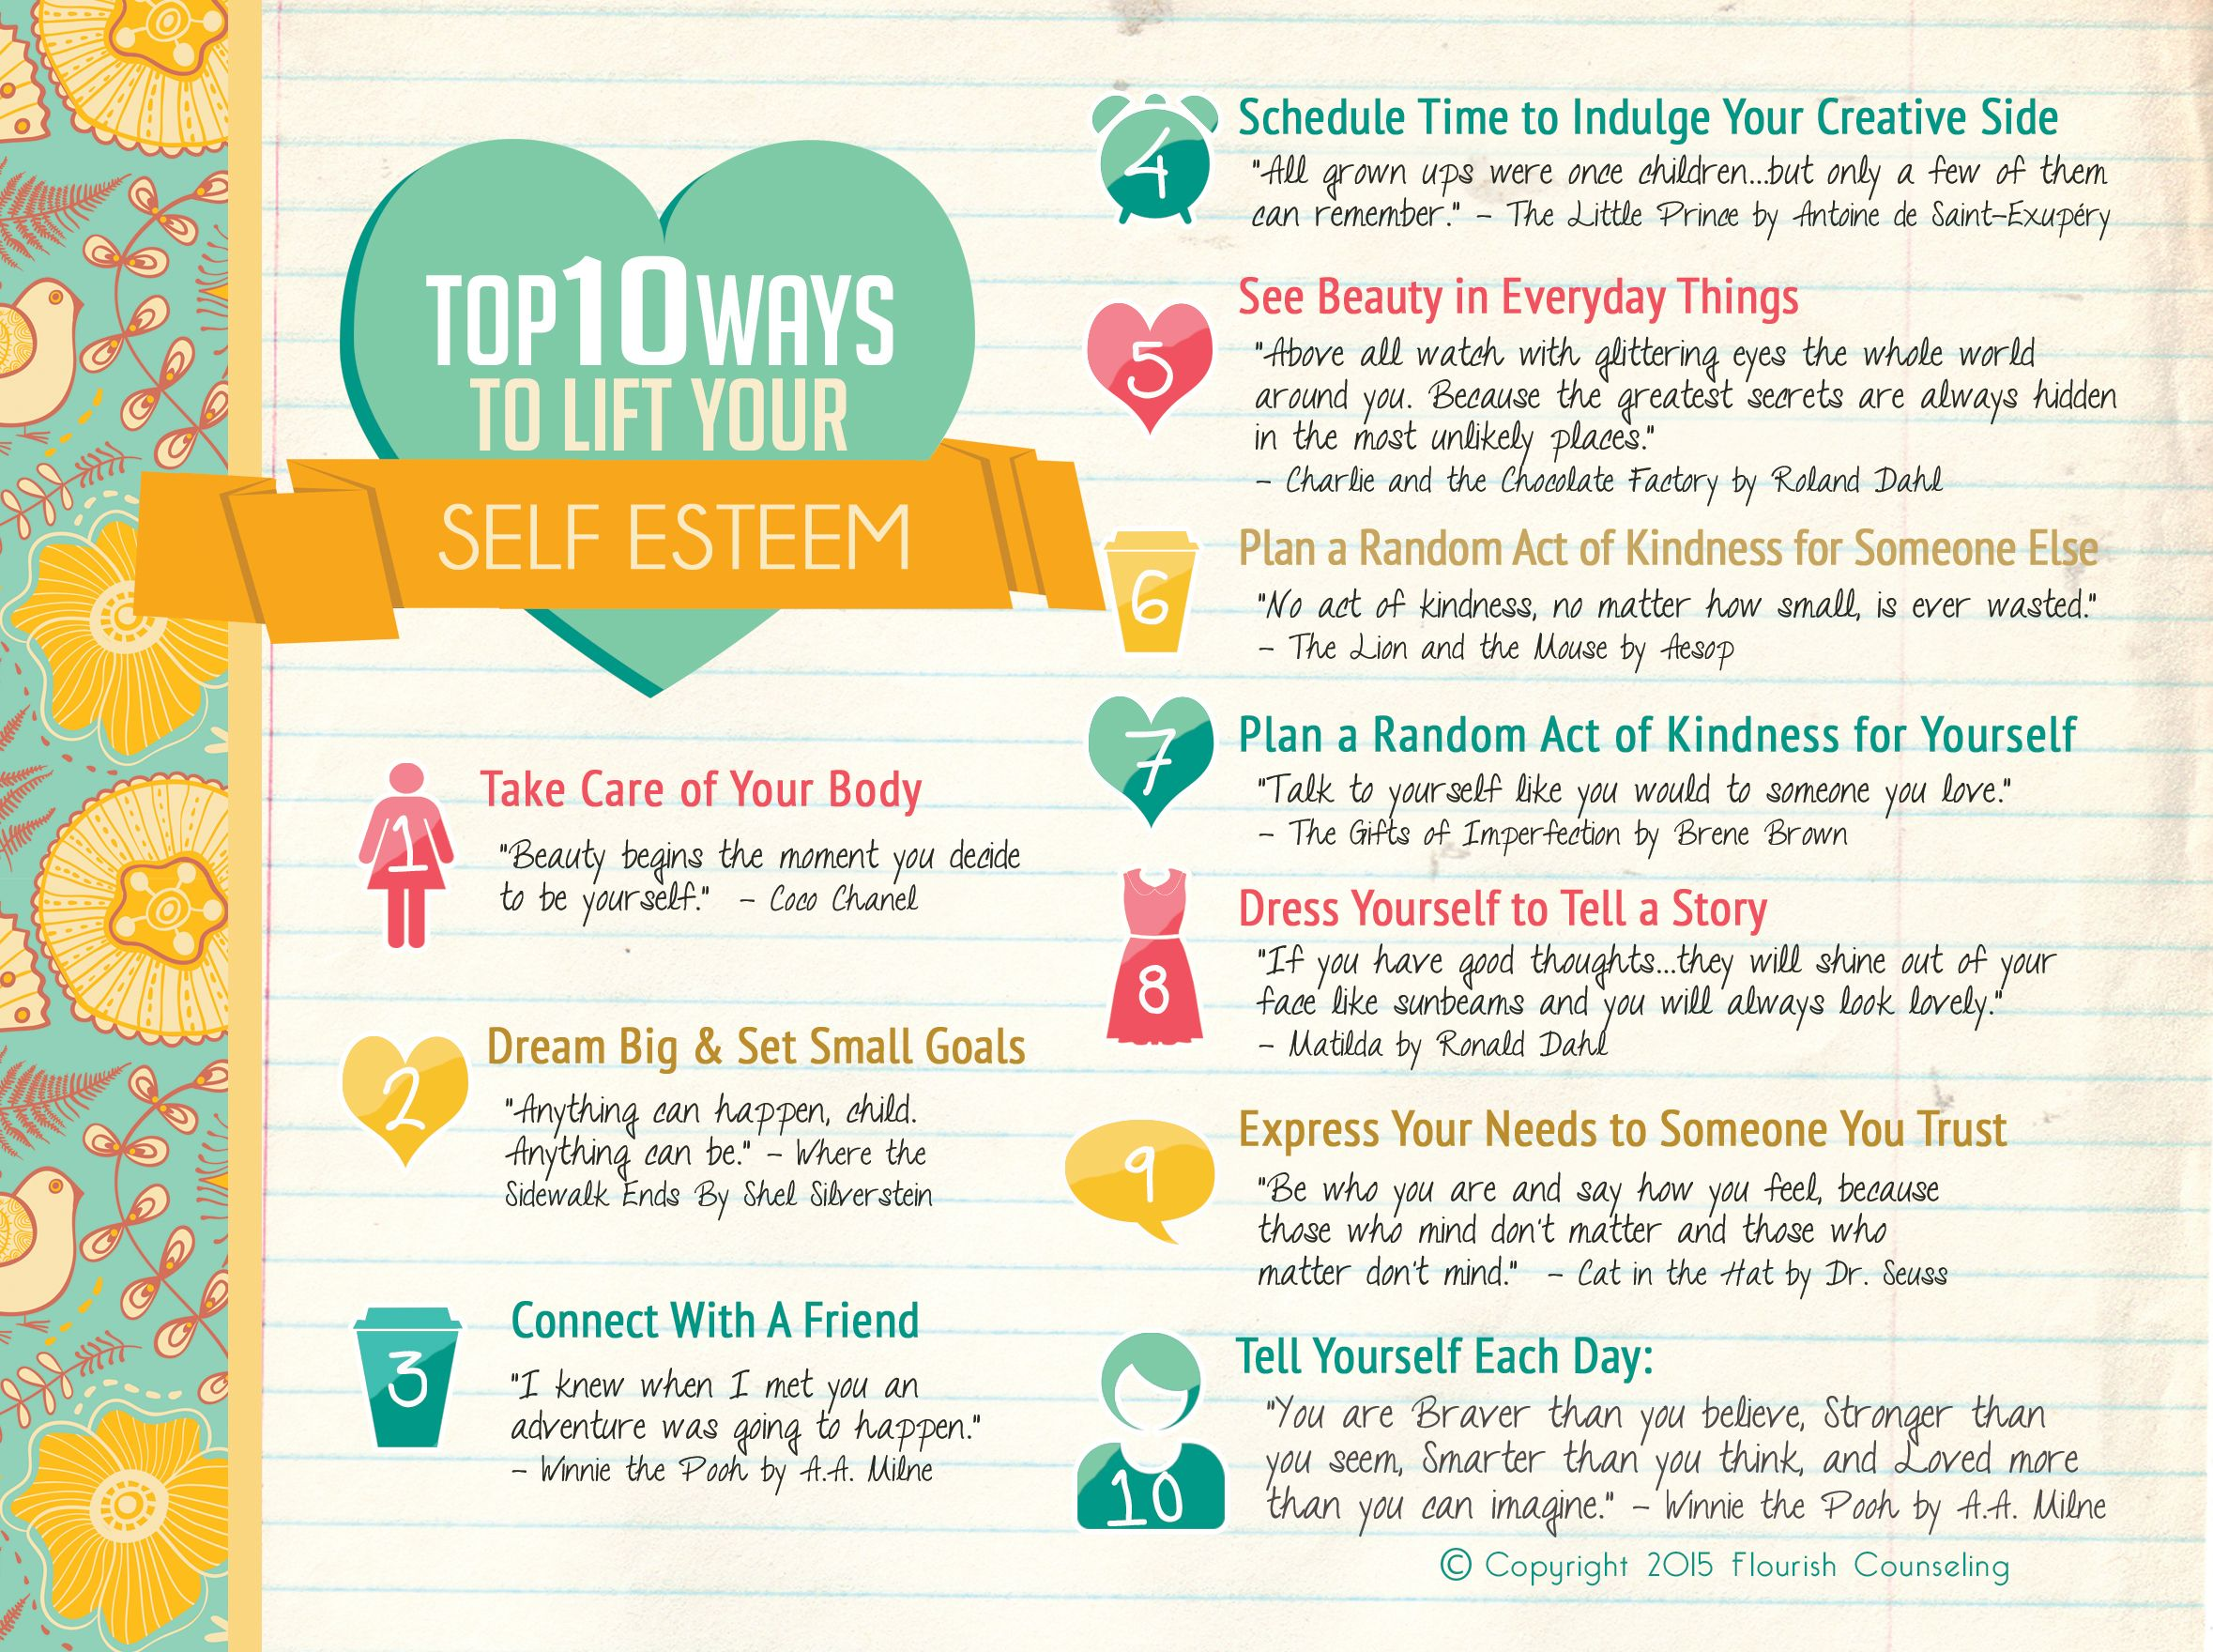 How to Boost Your Self-Esteem recommend